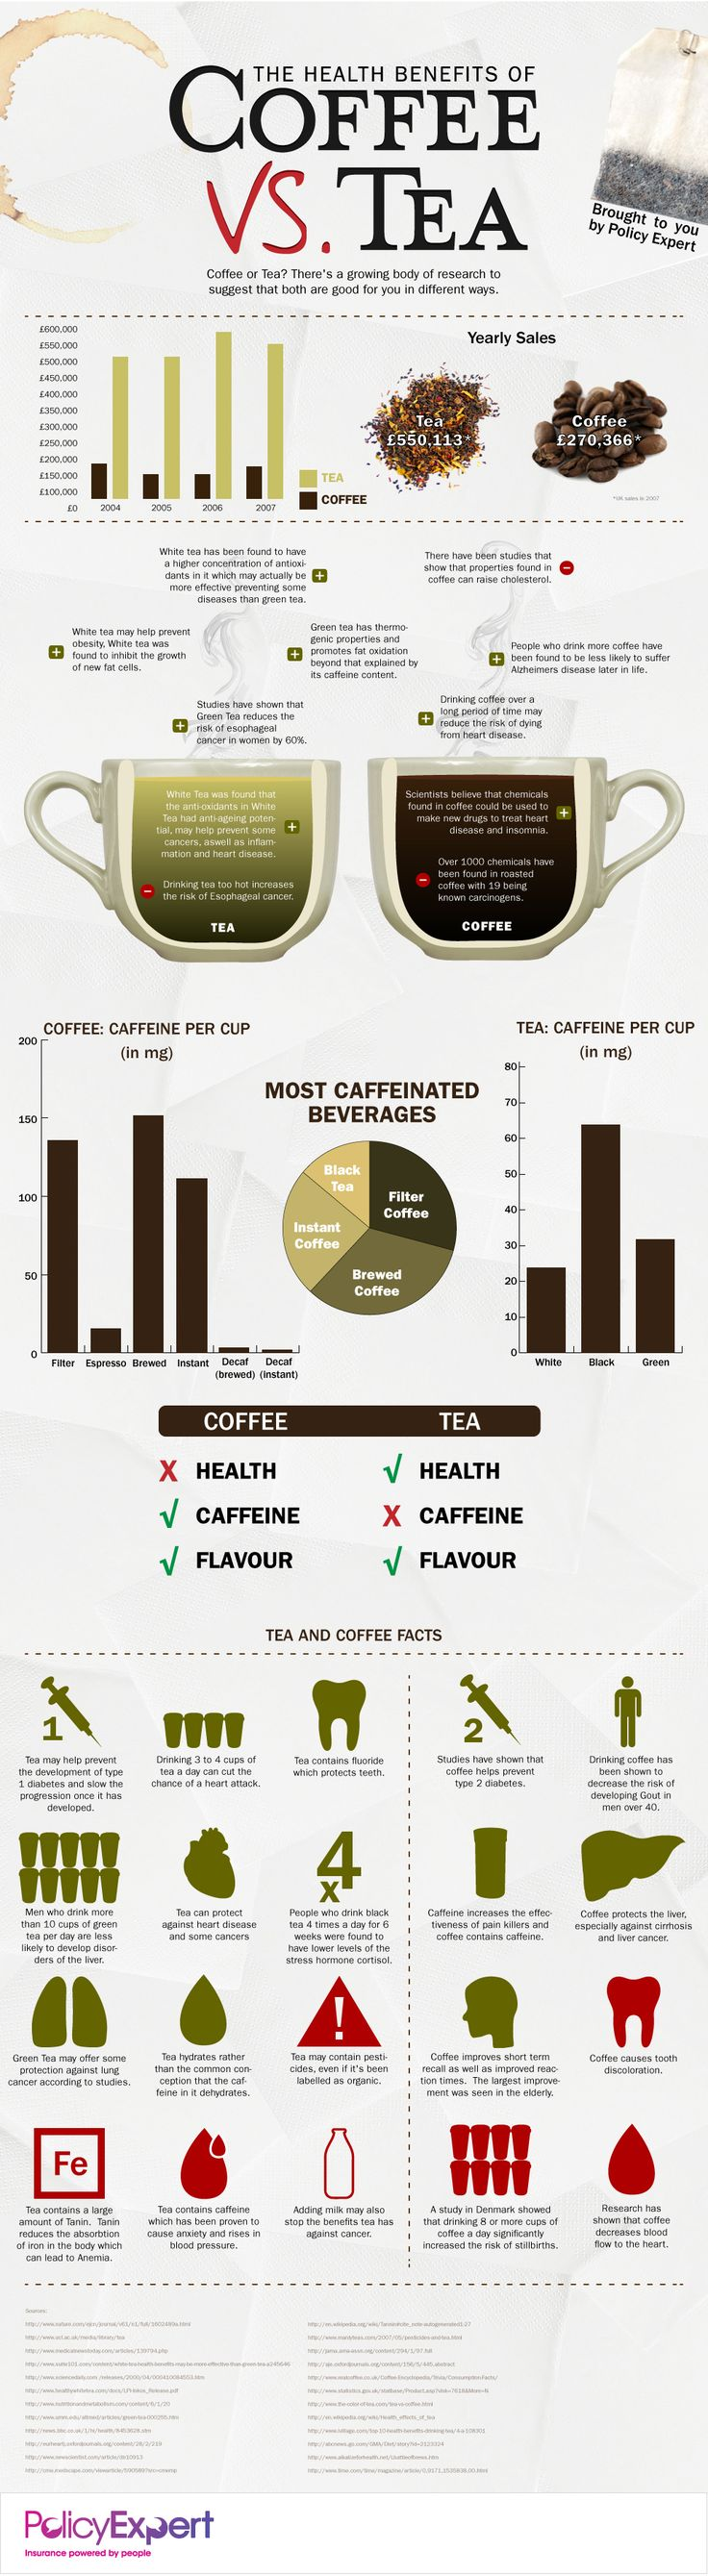 I've always wondered...: Benefits Of Coffee, Facts, Food, Teas Infographic, Health Benefits, Benefitsof, Healthy, Healthbenefit, Drinks